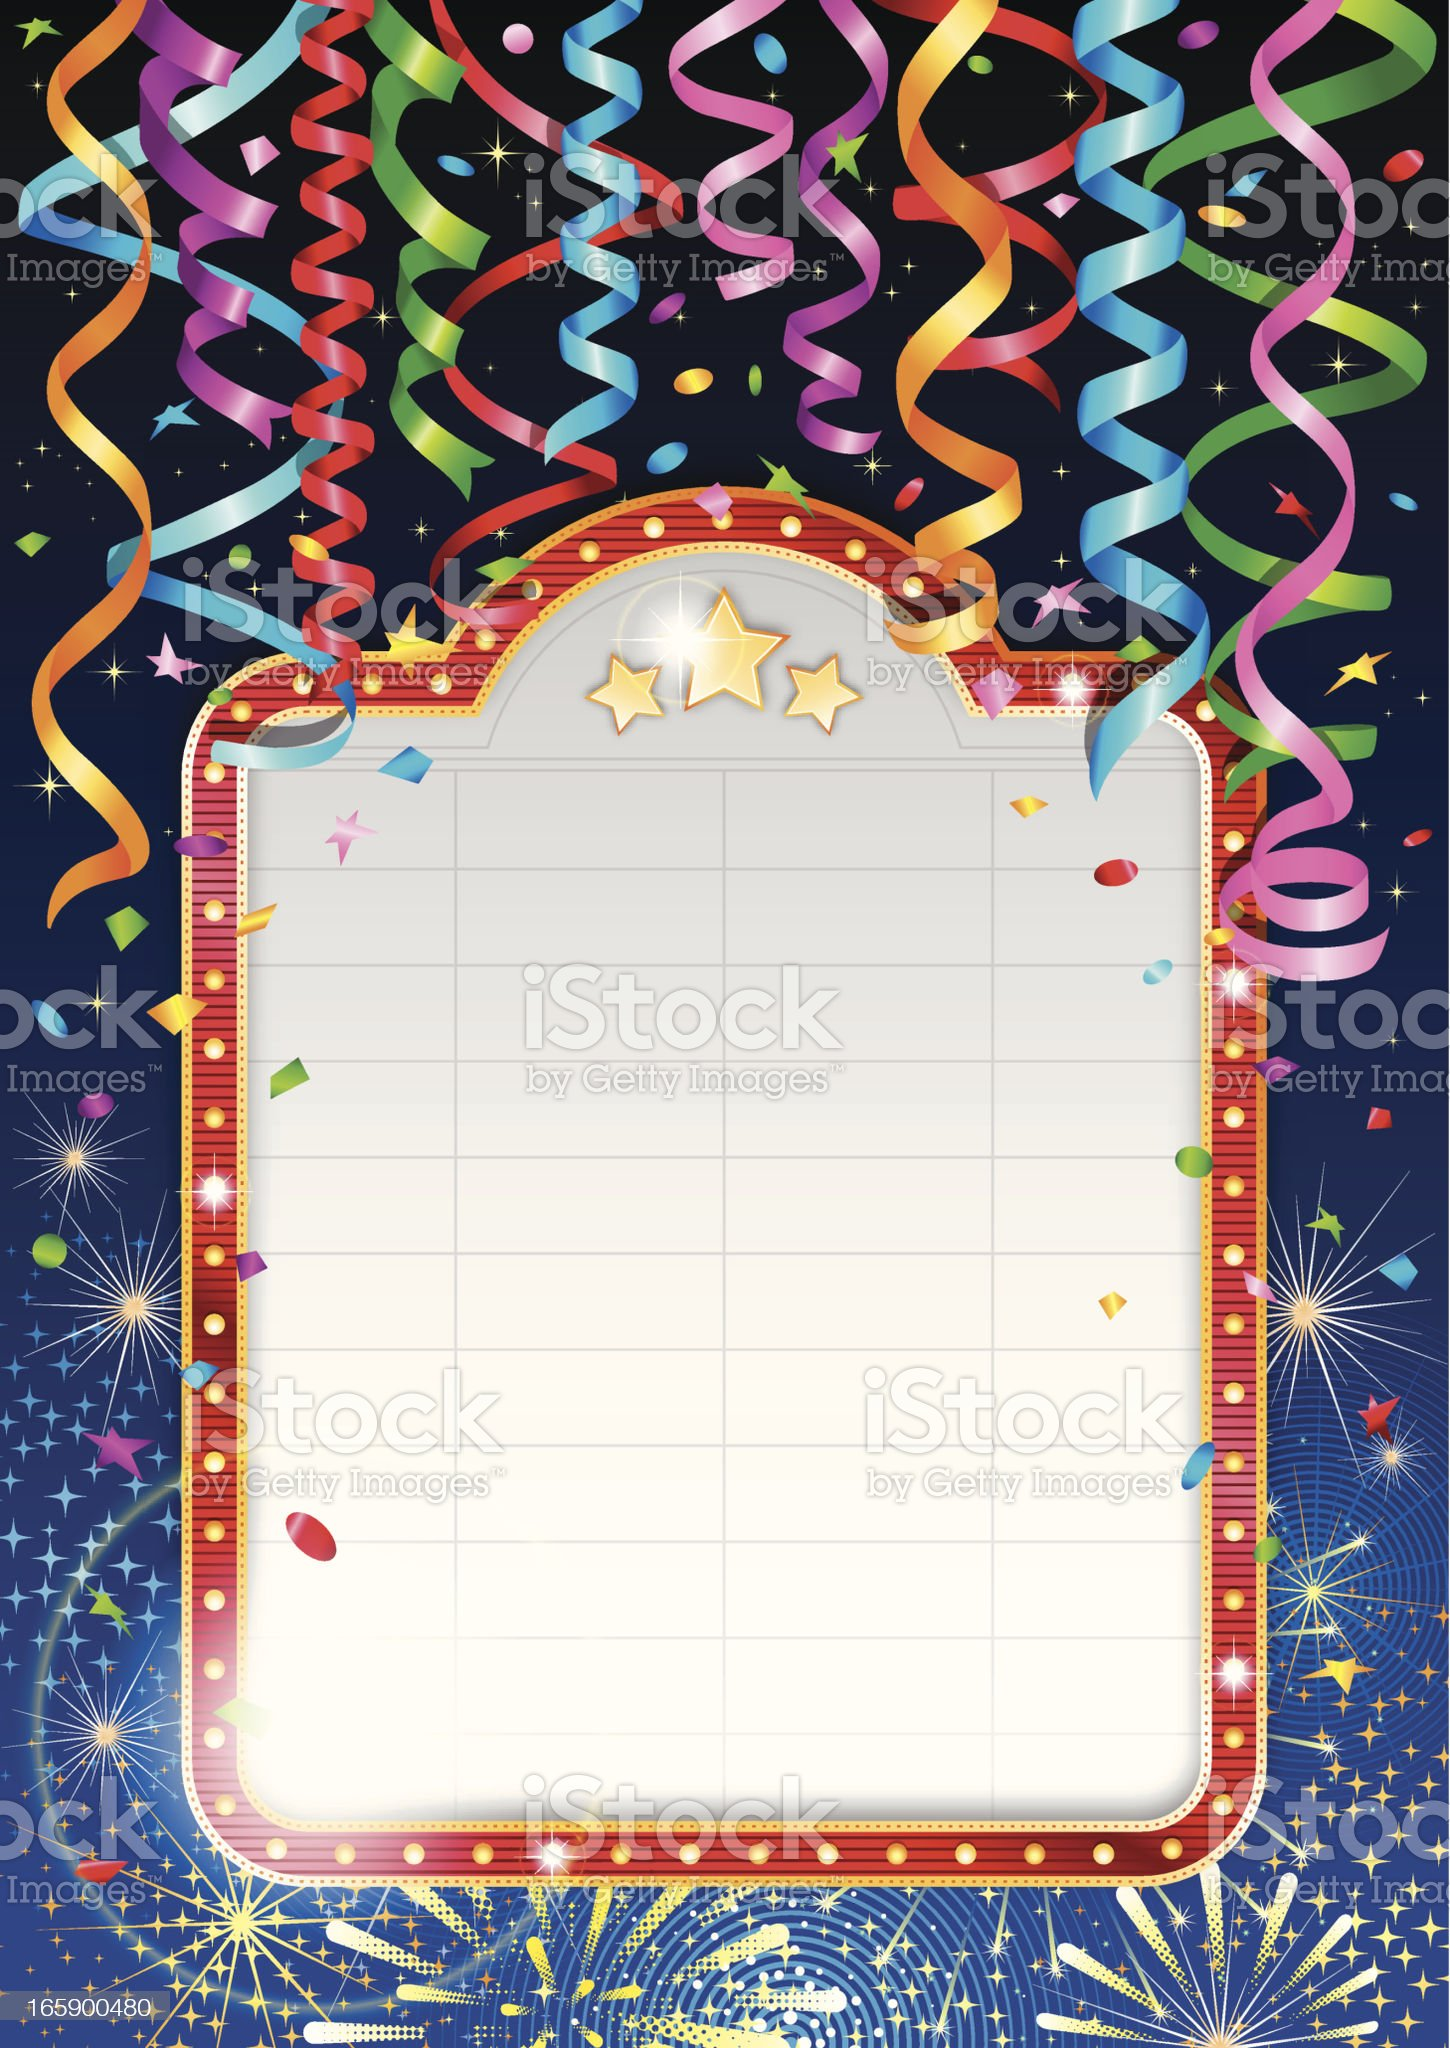 Celebration banner with streamers, confetti and fireworks royalty-free stock vector art